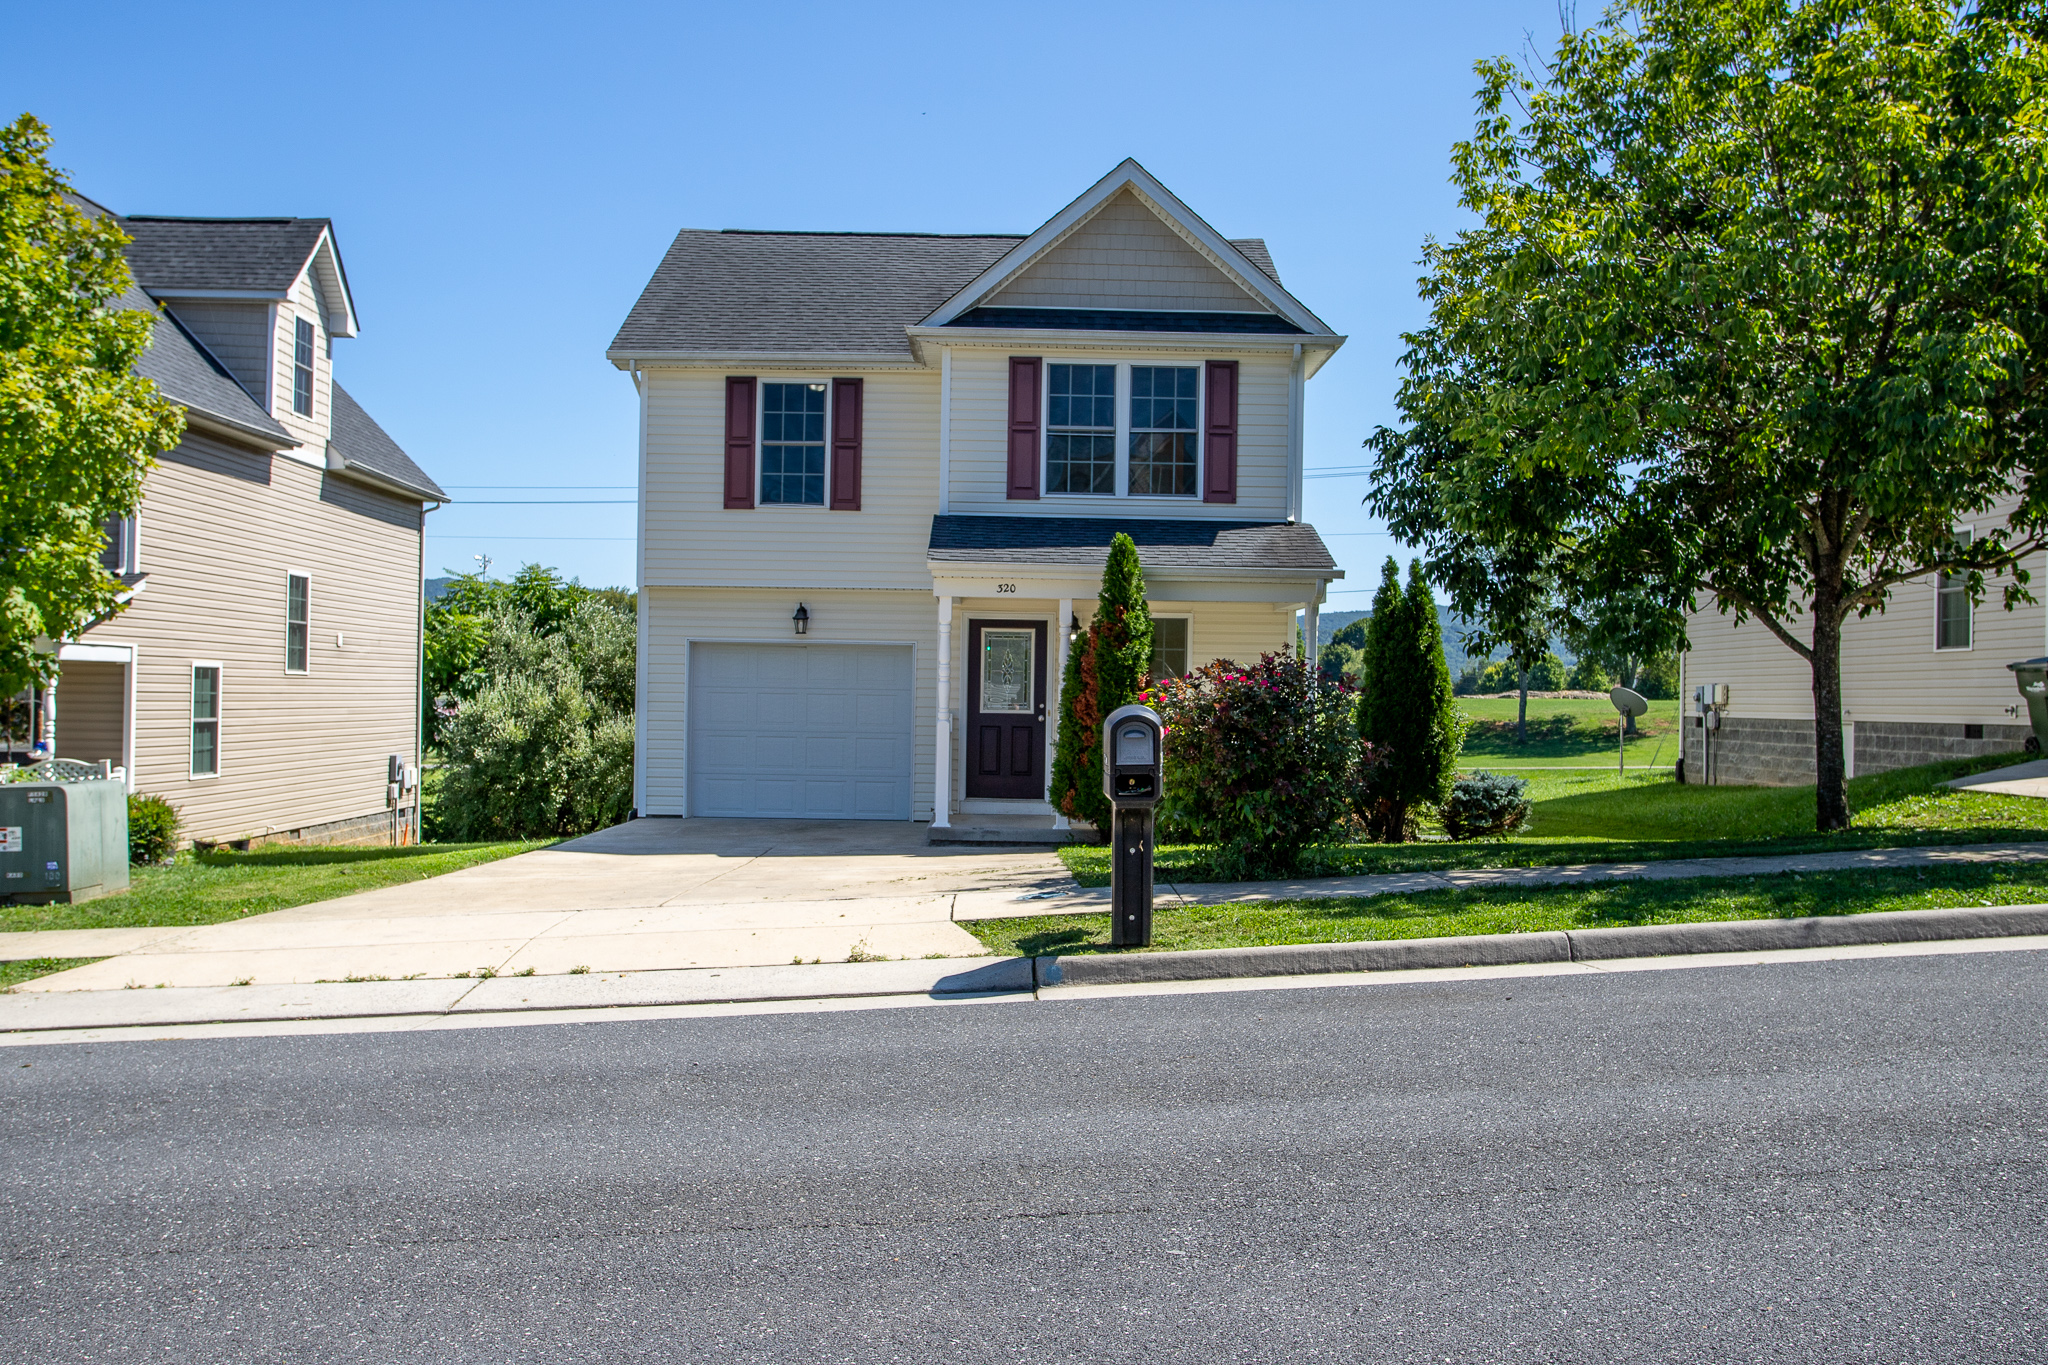 Waynesboro Home with a Beautiful Interior! 320 Overview Street